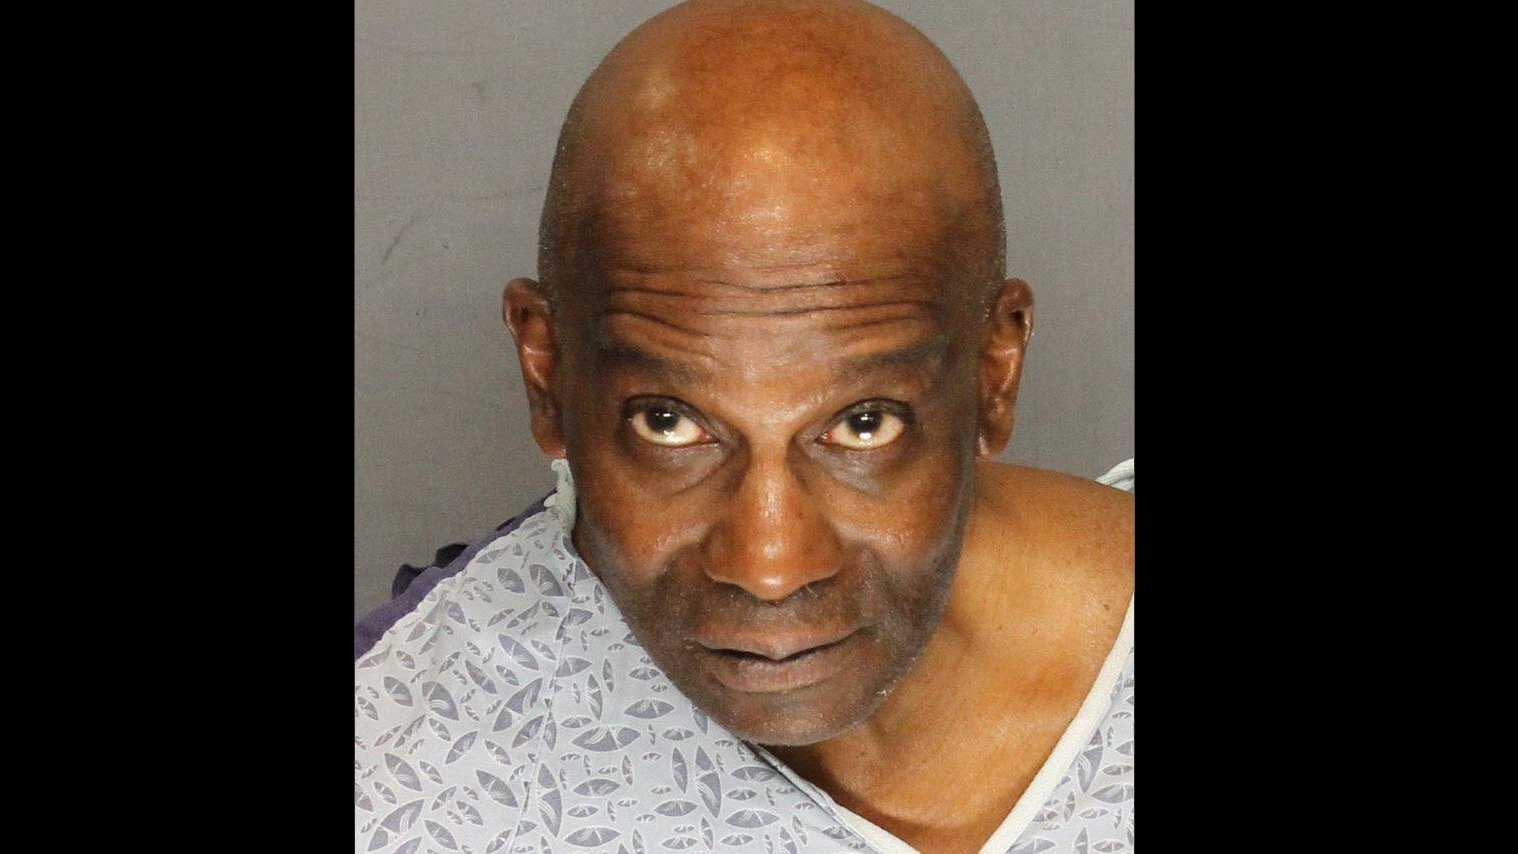 Rafael Watts, 59, was booked into San Joaquin County Jail on Wednesday, Feb. 24, 2016, in connection to the stabbing death of a retired police officer the day before, the Stockton Police Department said.